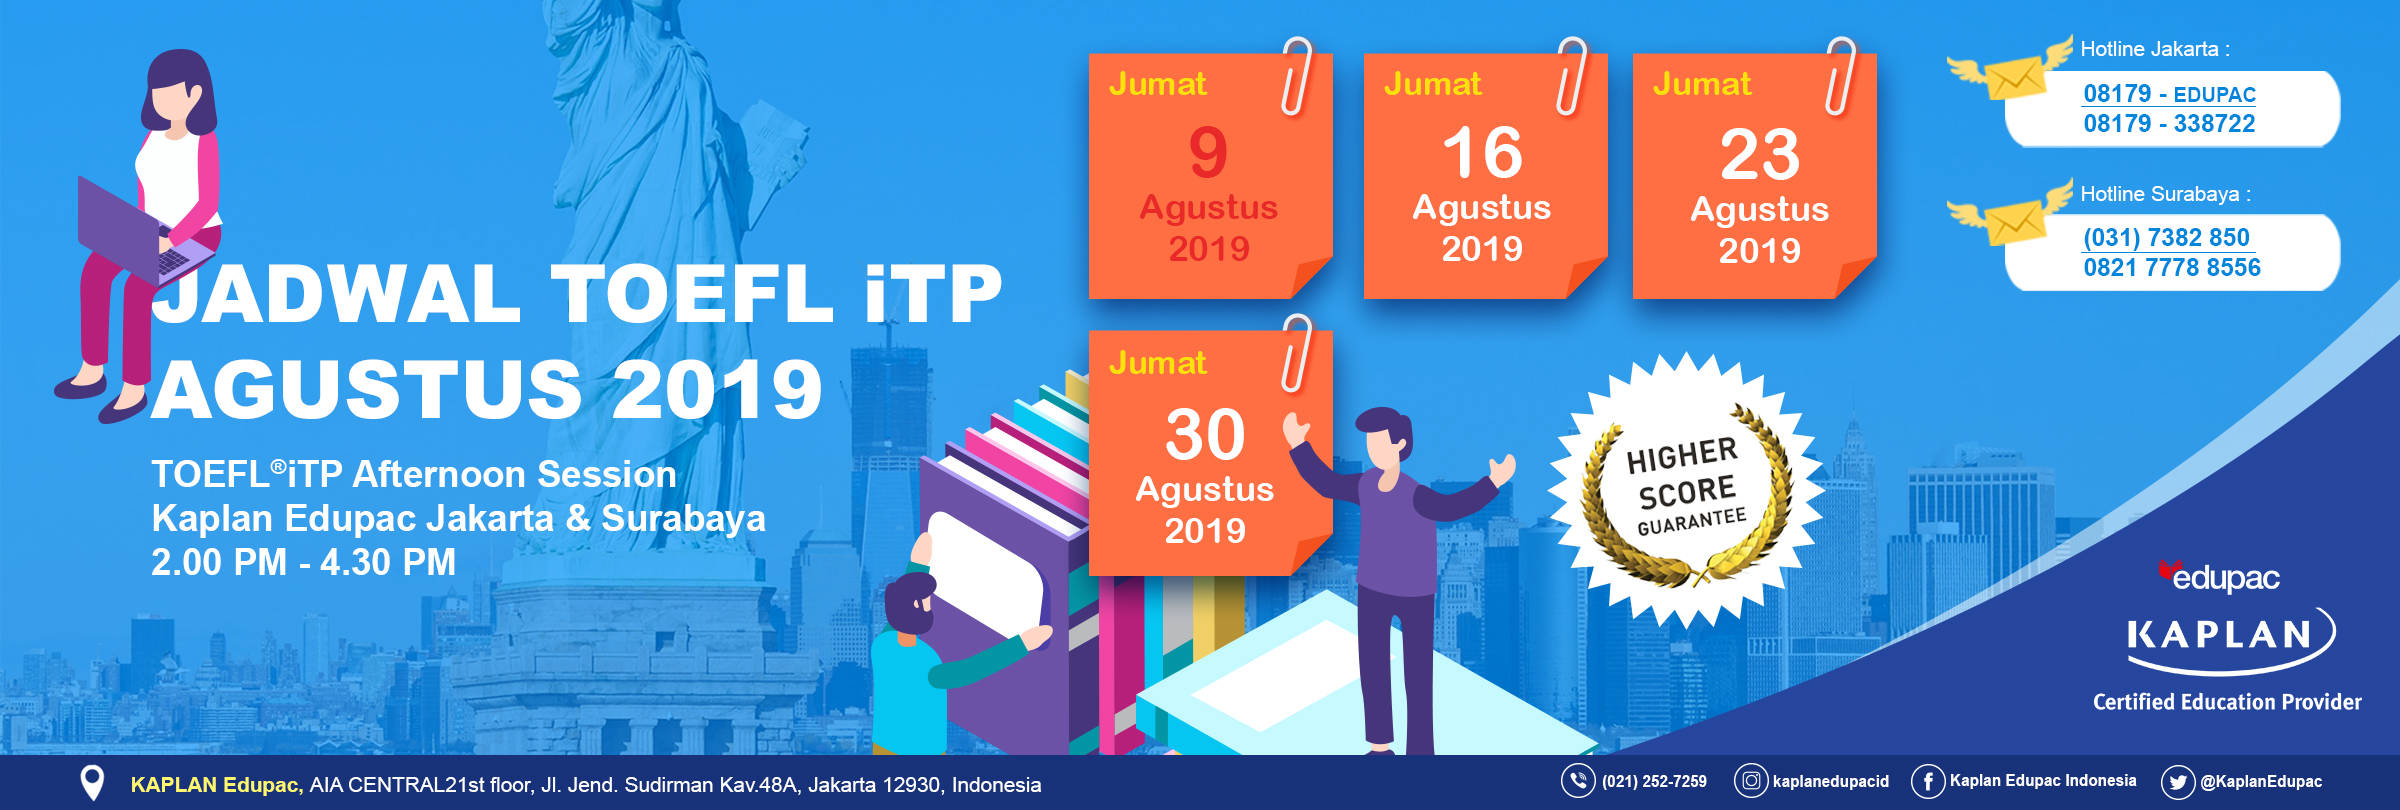 TOEFL ITP Afternoon Session August 2019